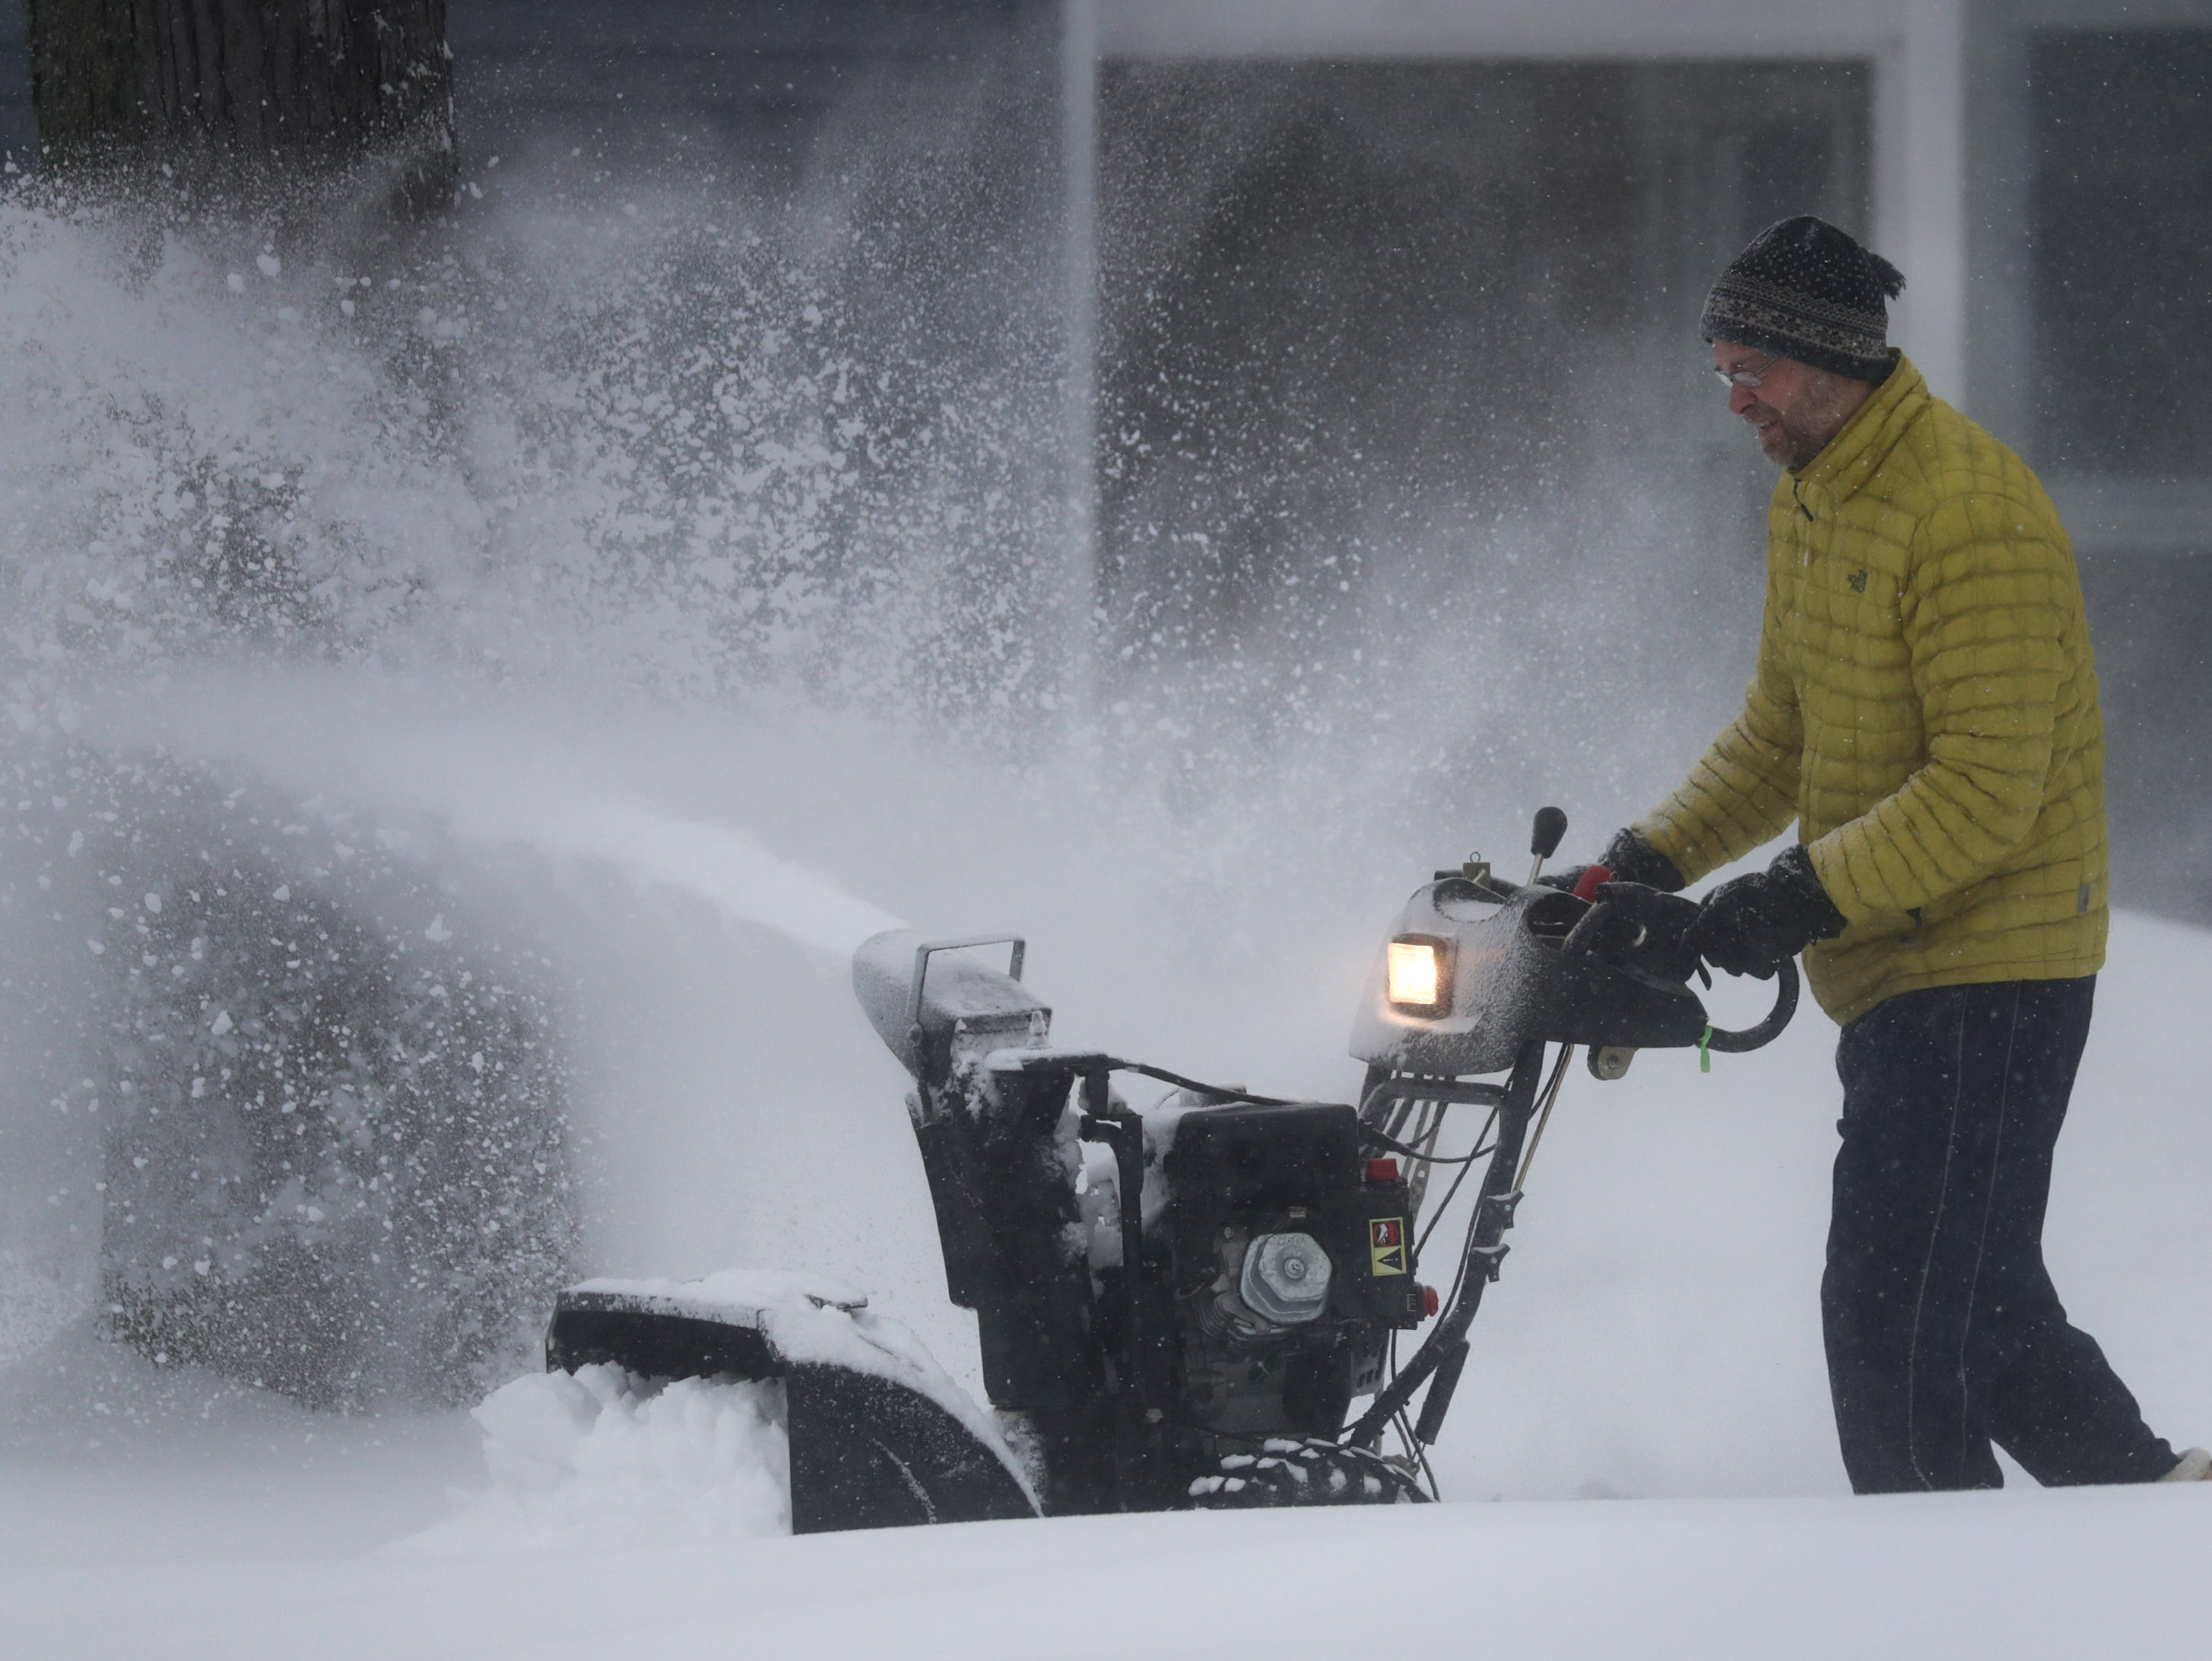 Jeff Clark clears a sidewalk on Tuesday, Feb. 12, 2019, in Appleton, Wis. The latest snow storm to move through the state dropped several inches of snow overnight, 6 to 12 inches are expected by Tuesday evening.